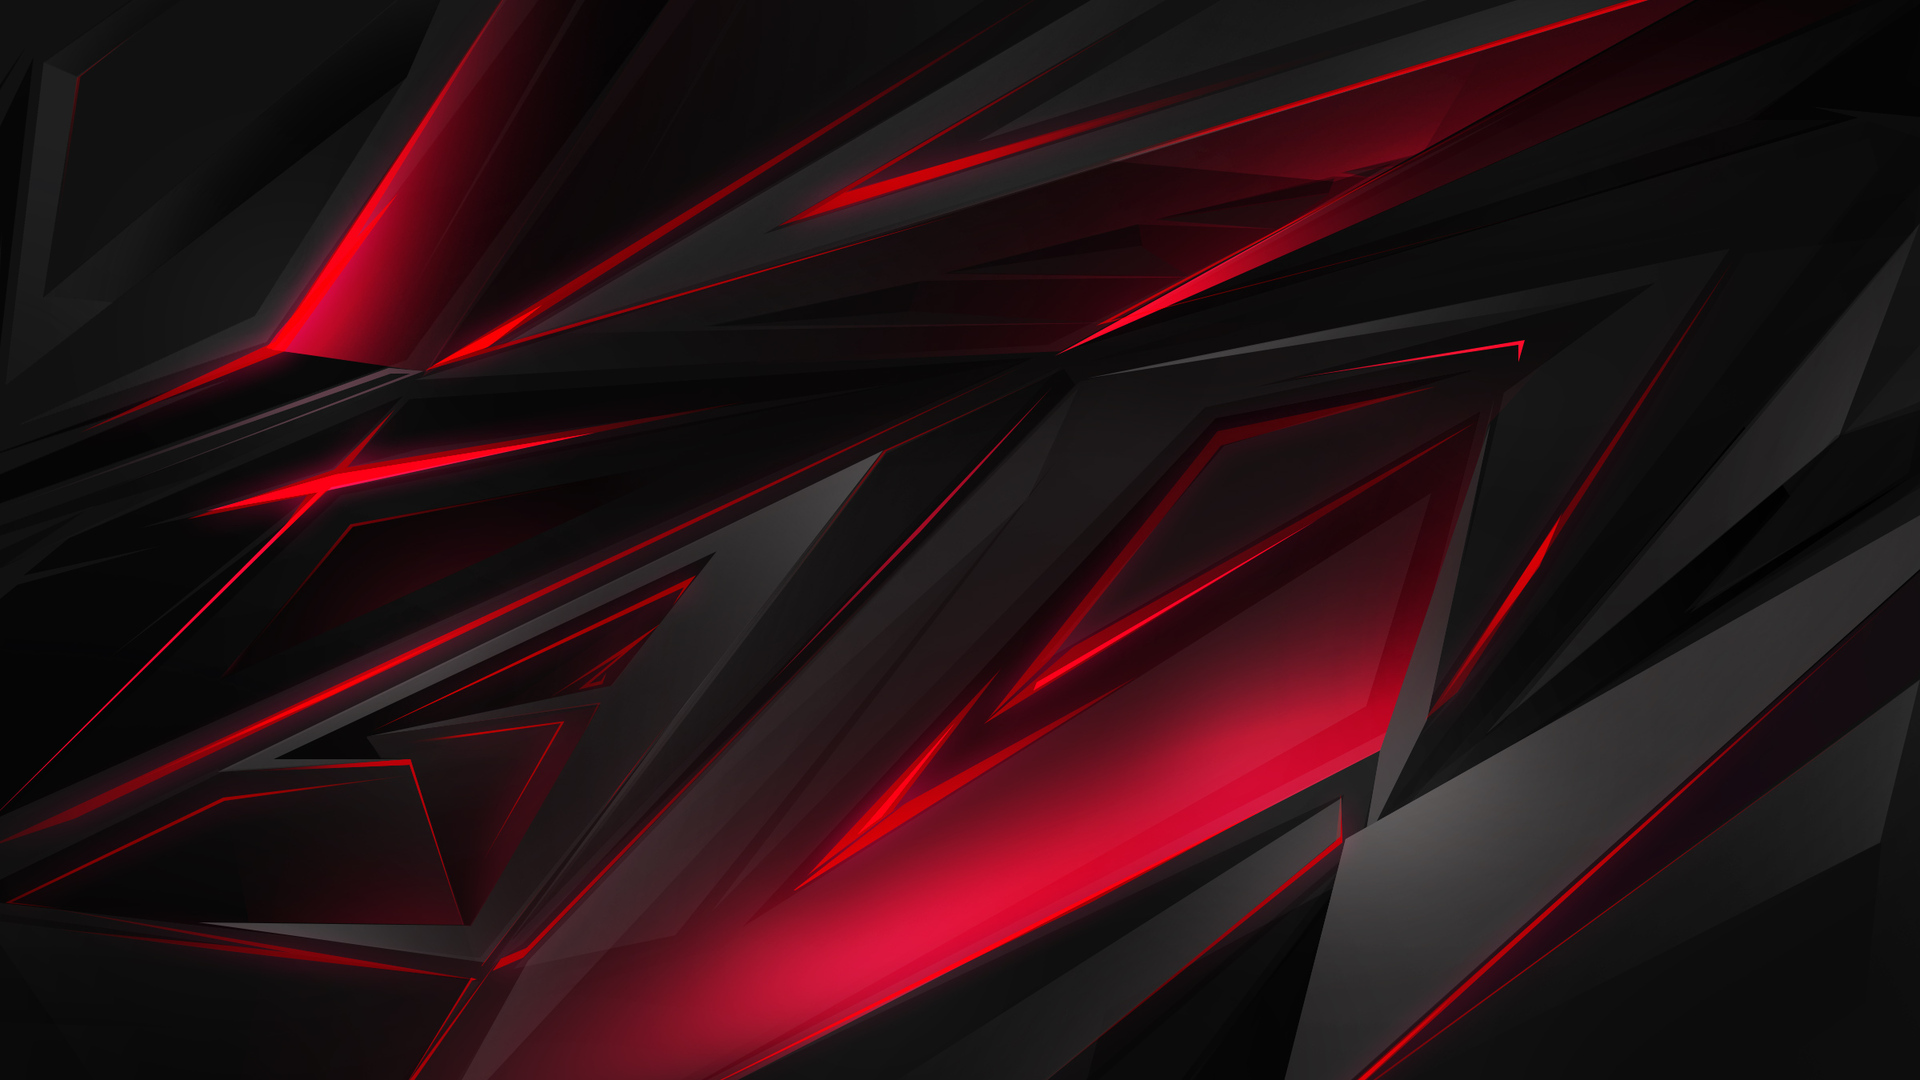 polygonal-abstract-red-dark-background-eo.jpg